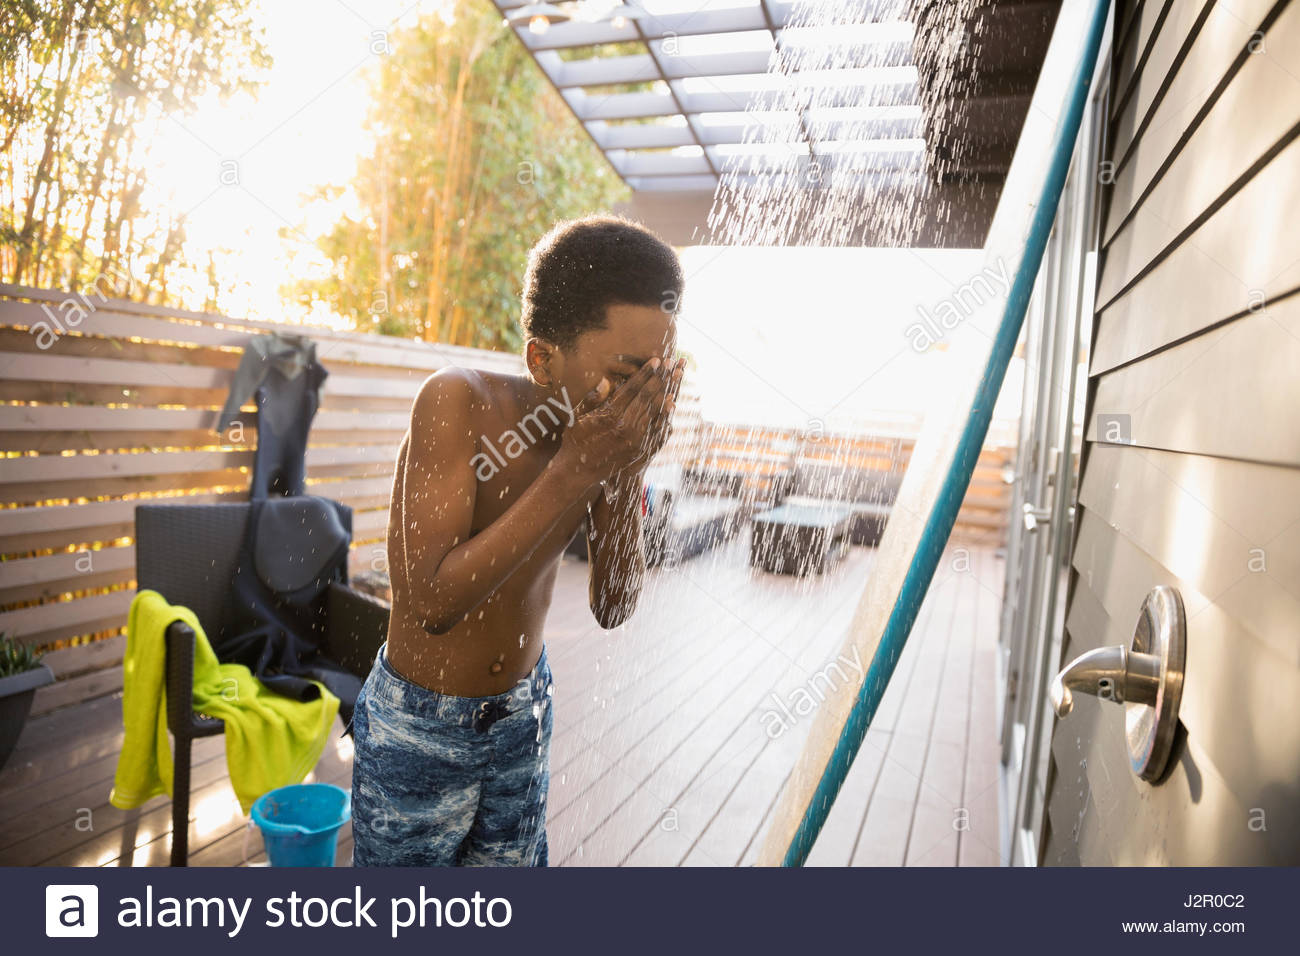 African American boy in swim trunks using beach house shower on deck - Stock Image